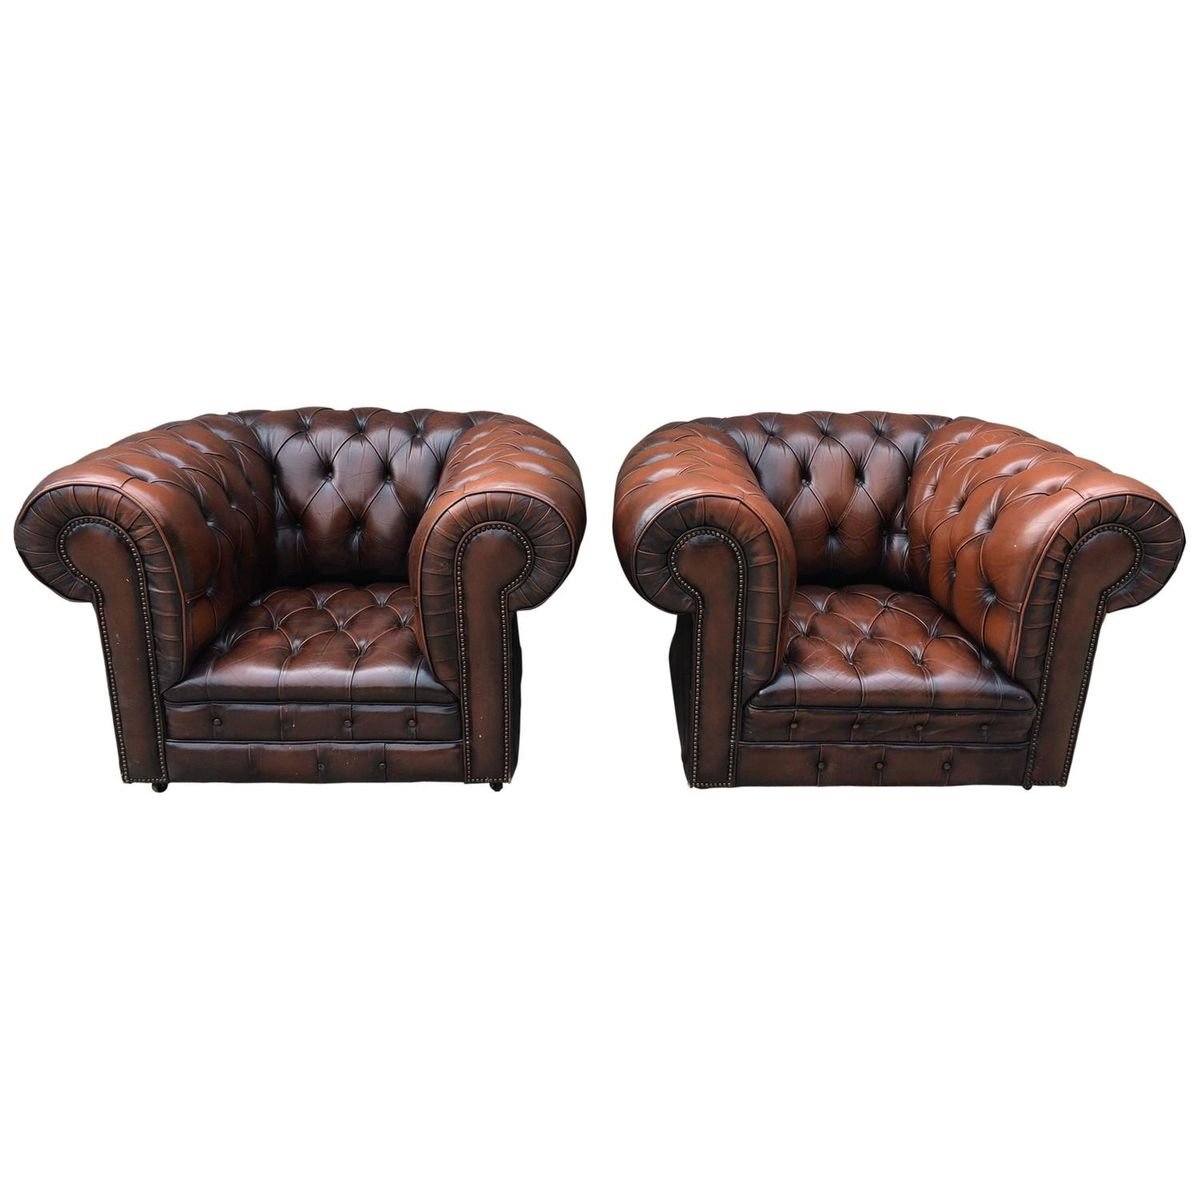 vintage leder chesterfield clubsessel 2er set bei pamono. Black Bedroom Furniture Sets. Home Design Ideas